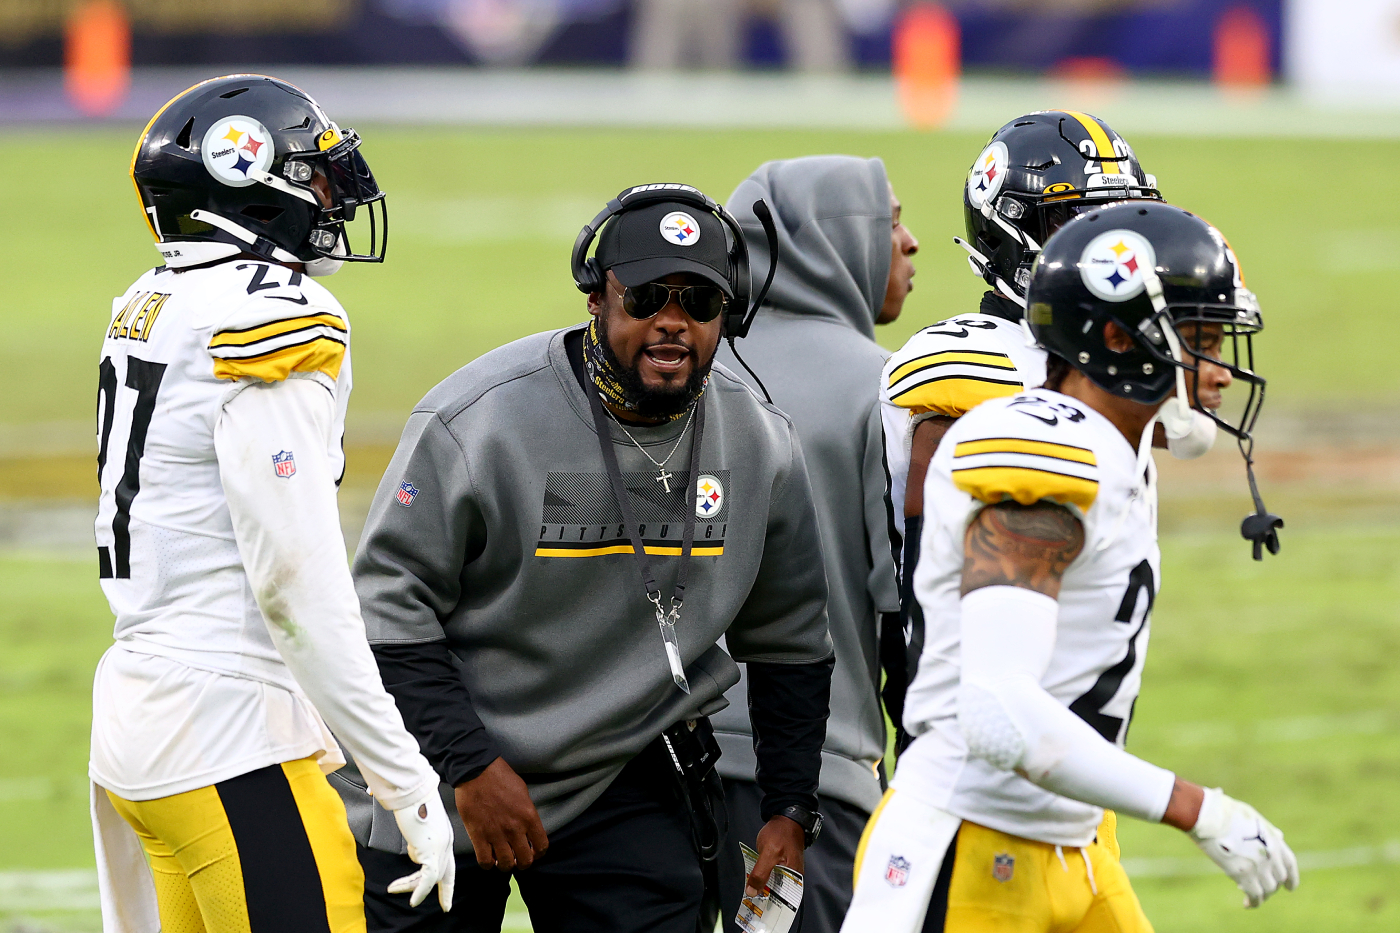 The Pittsburgh Steelers are one of the NFL's best teams. They just secured their Super Bowl title hopes, too, by adding Avery Williamson.